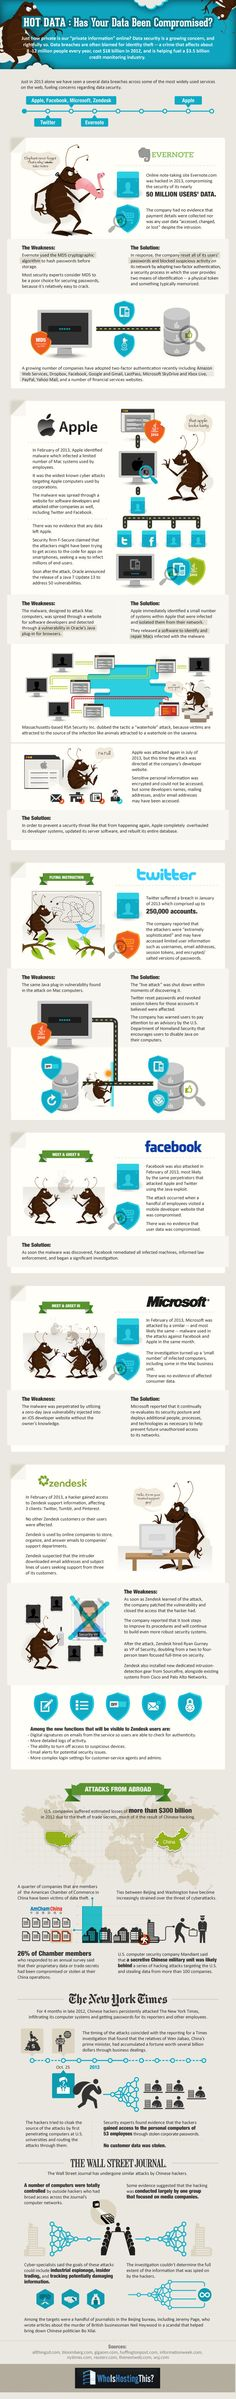 Has Your Data Been Compromised - The Biggest #Security Breaches of 2013 - #infographic #technology december, twitter, compromis, social media, data, comput, infograph, apples, blog